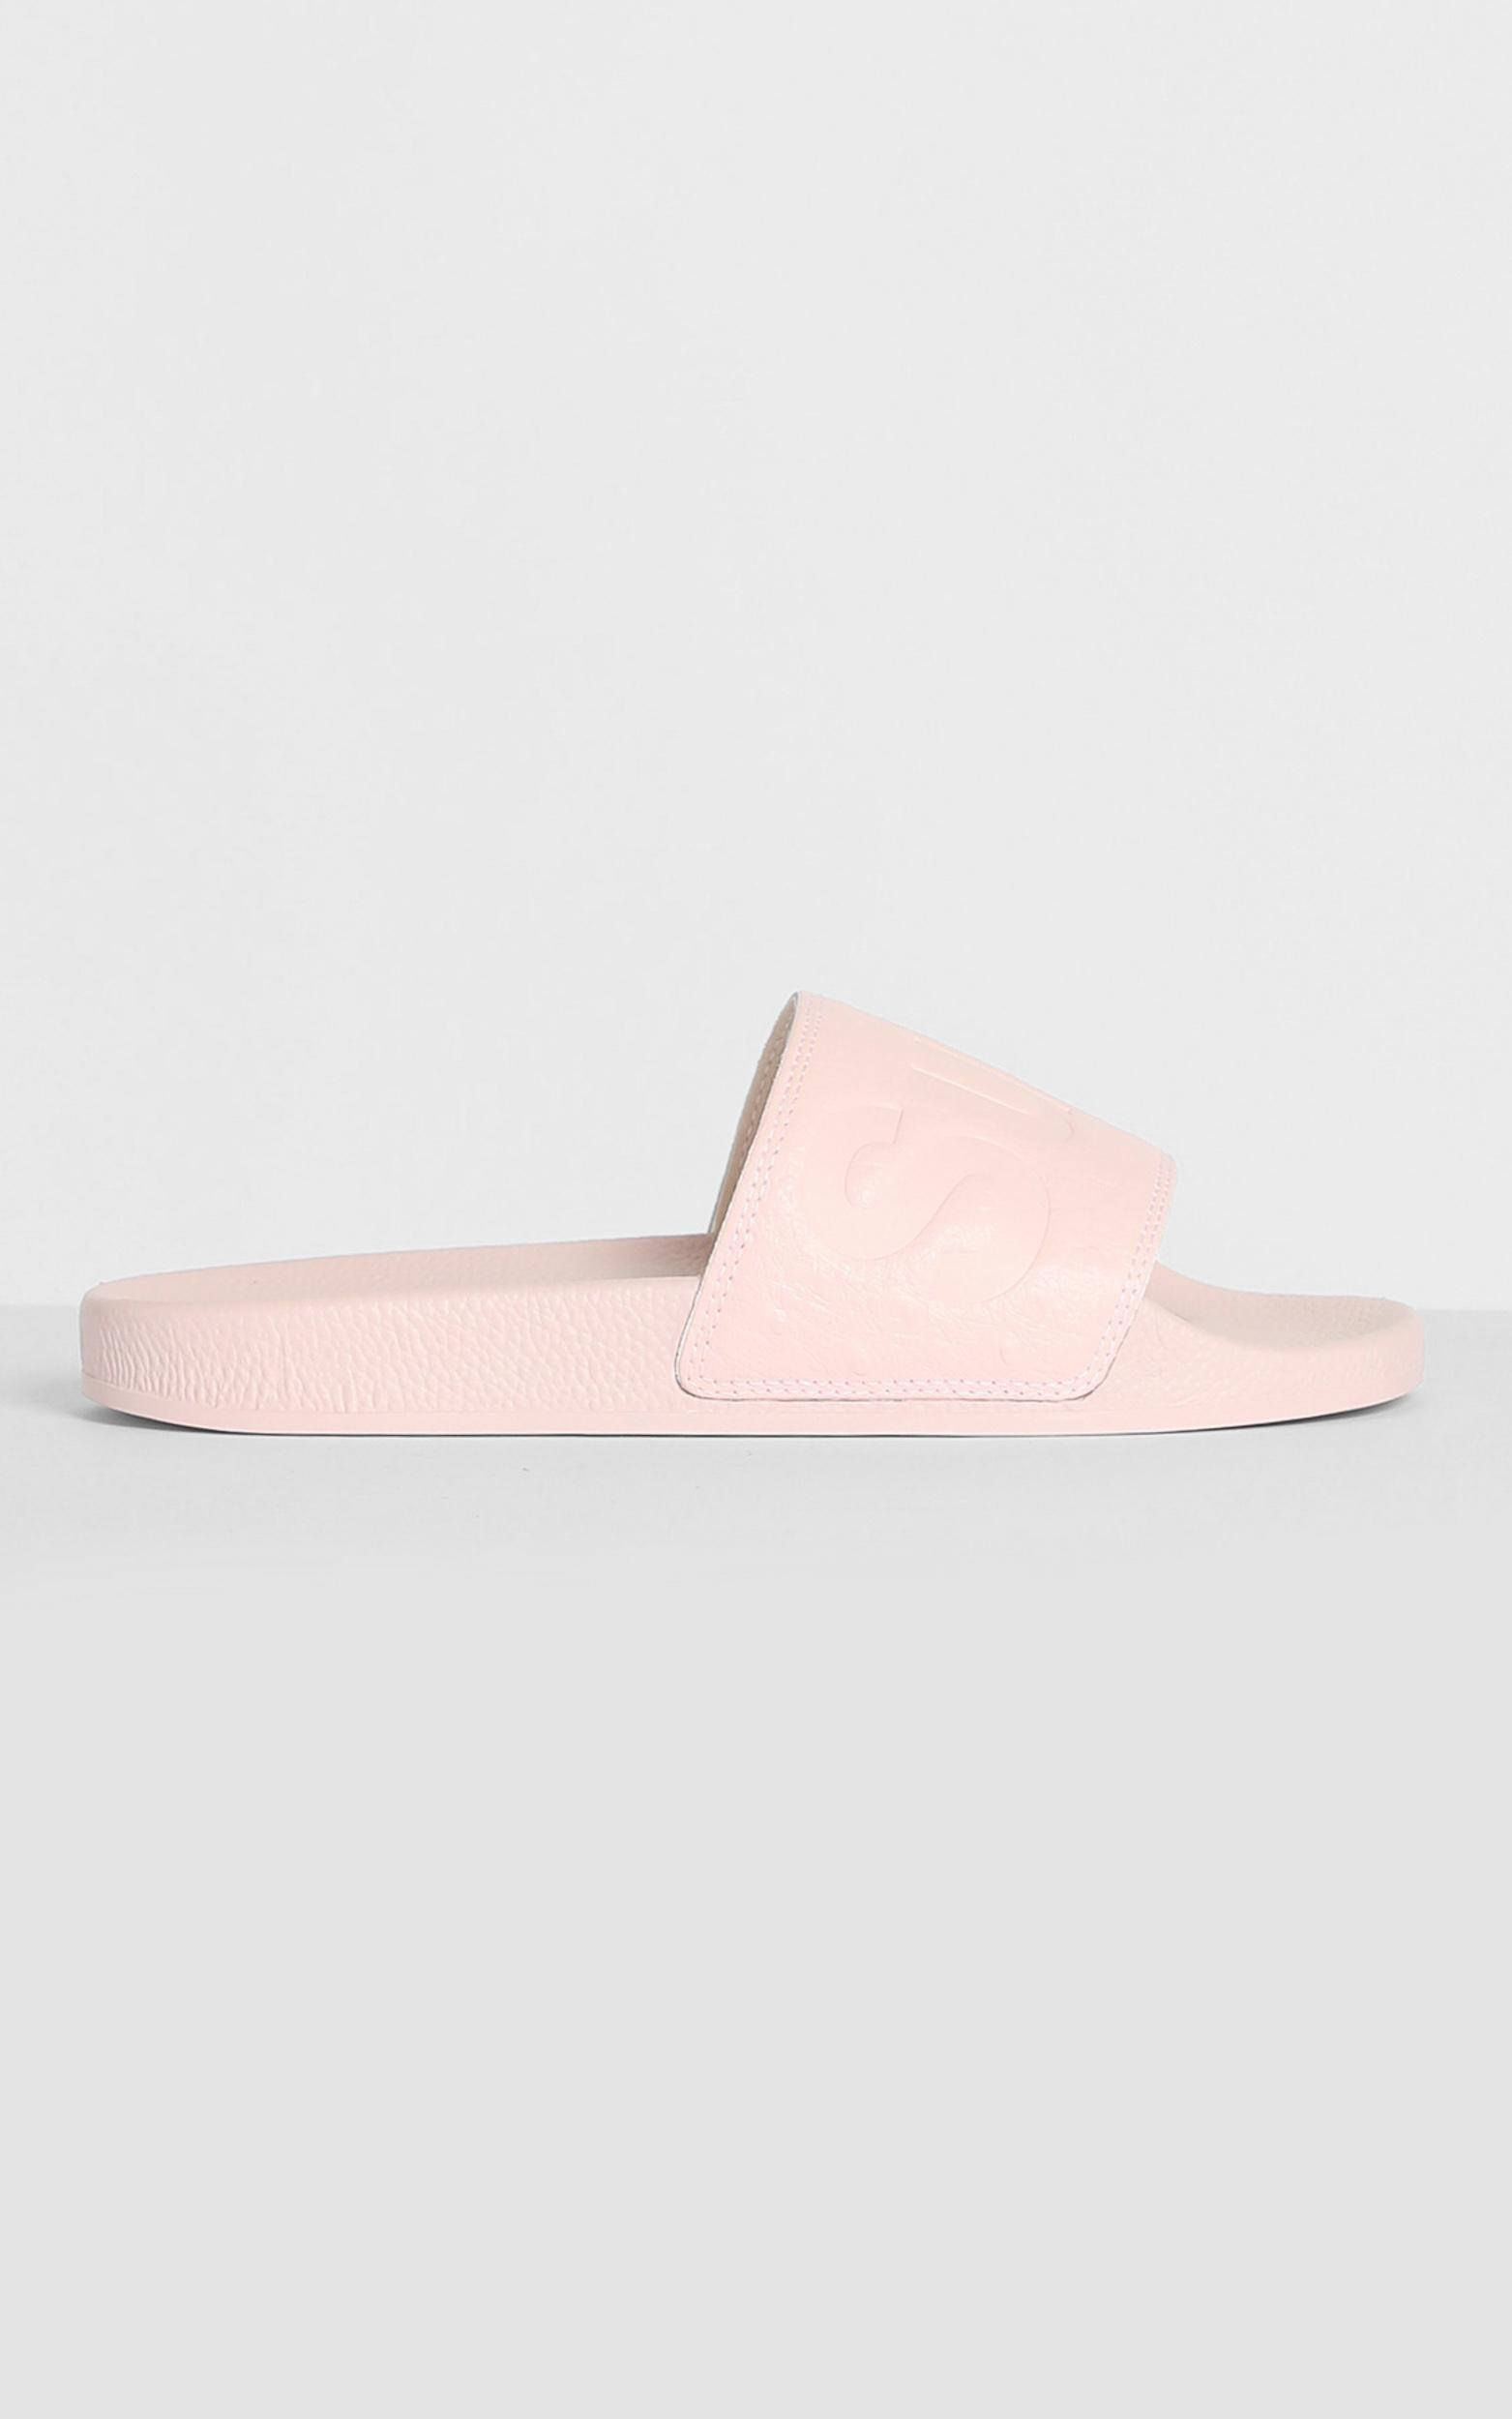 Superga - 1908 Ostrichpuu Slides in Pink Smoke , Pink, hi-res image number null